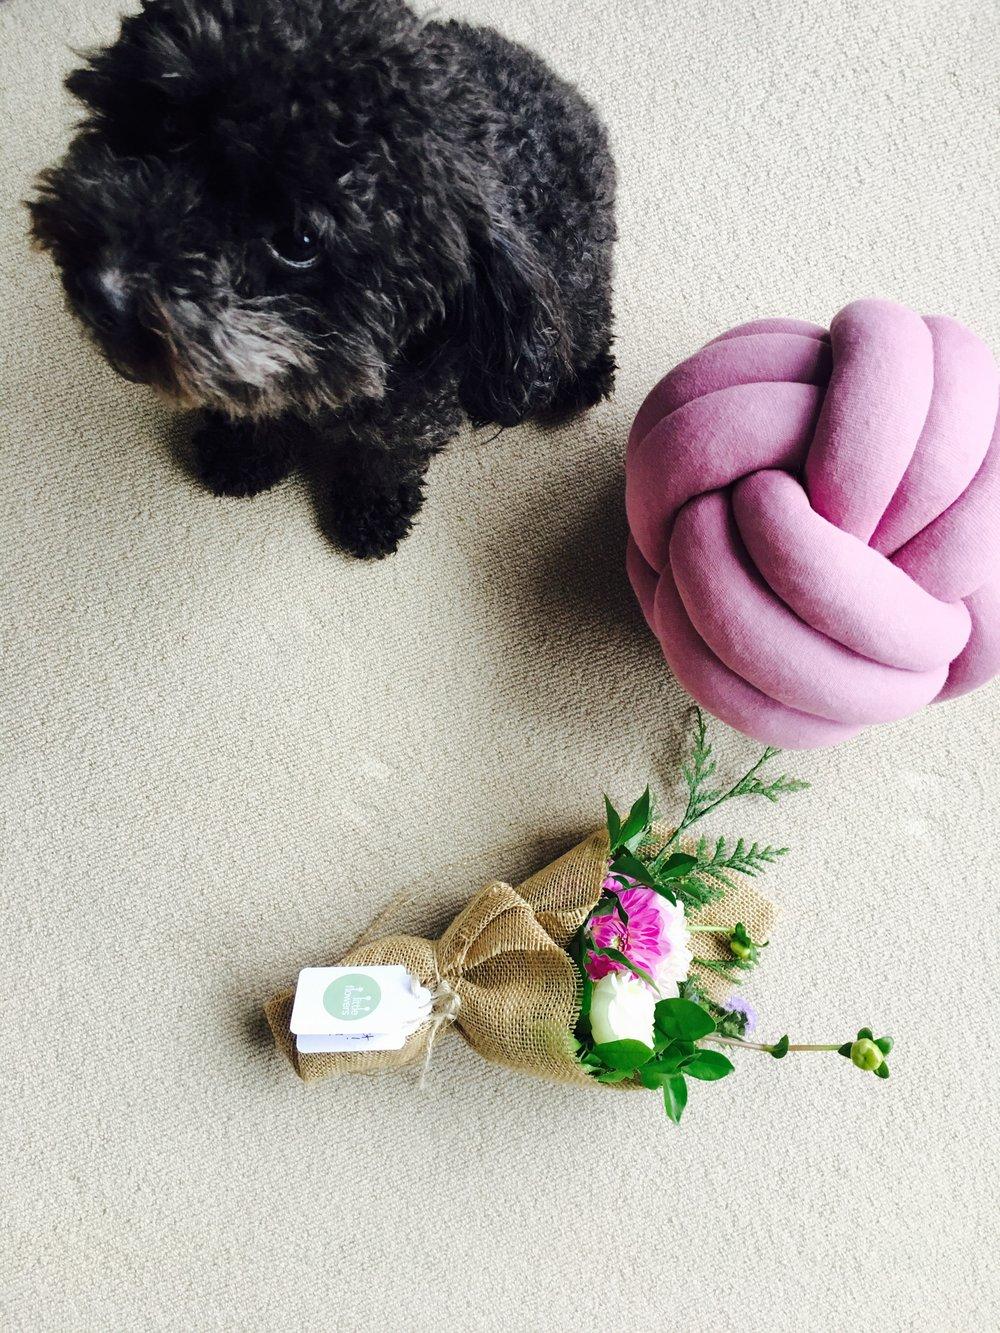 Black doggy, knot cushion & little posy